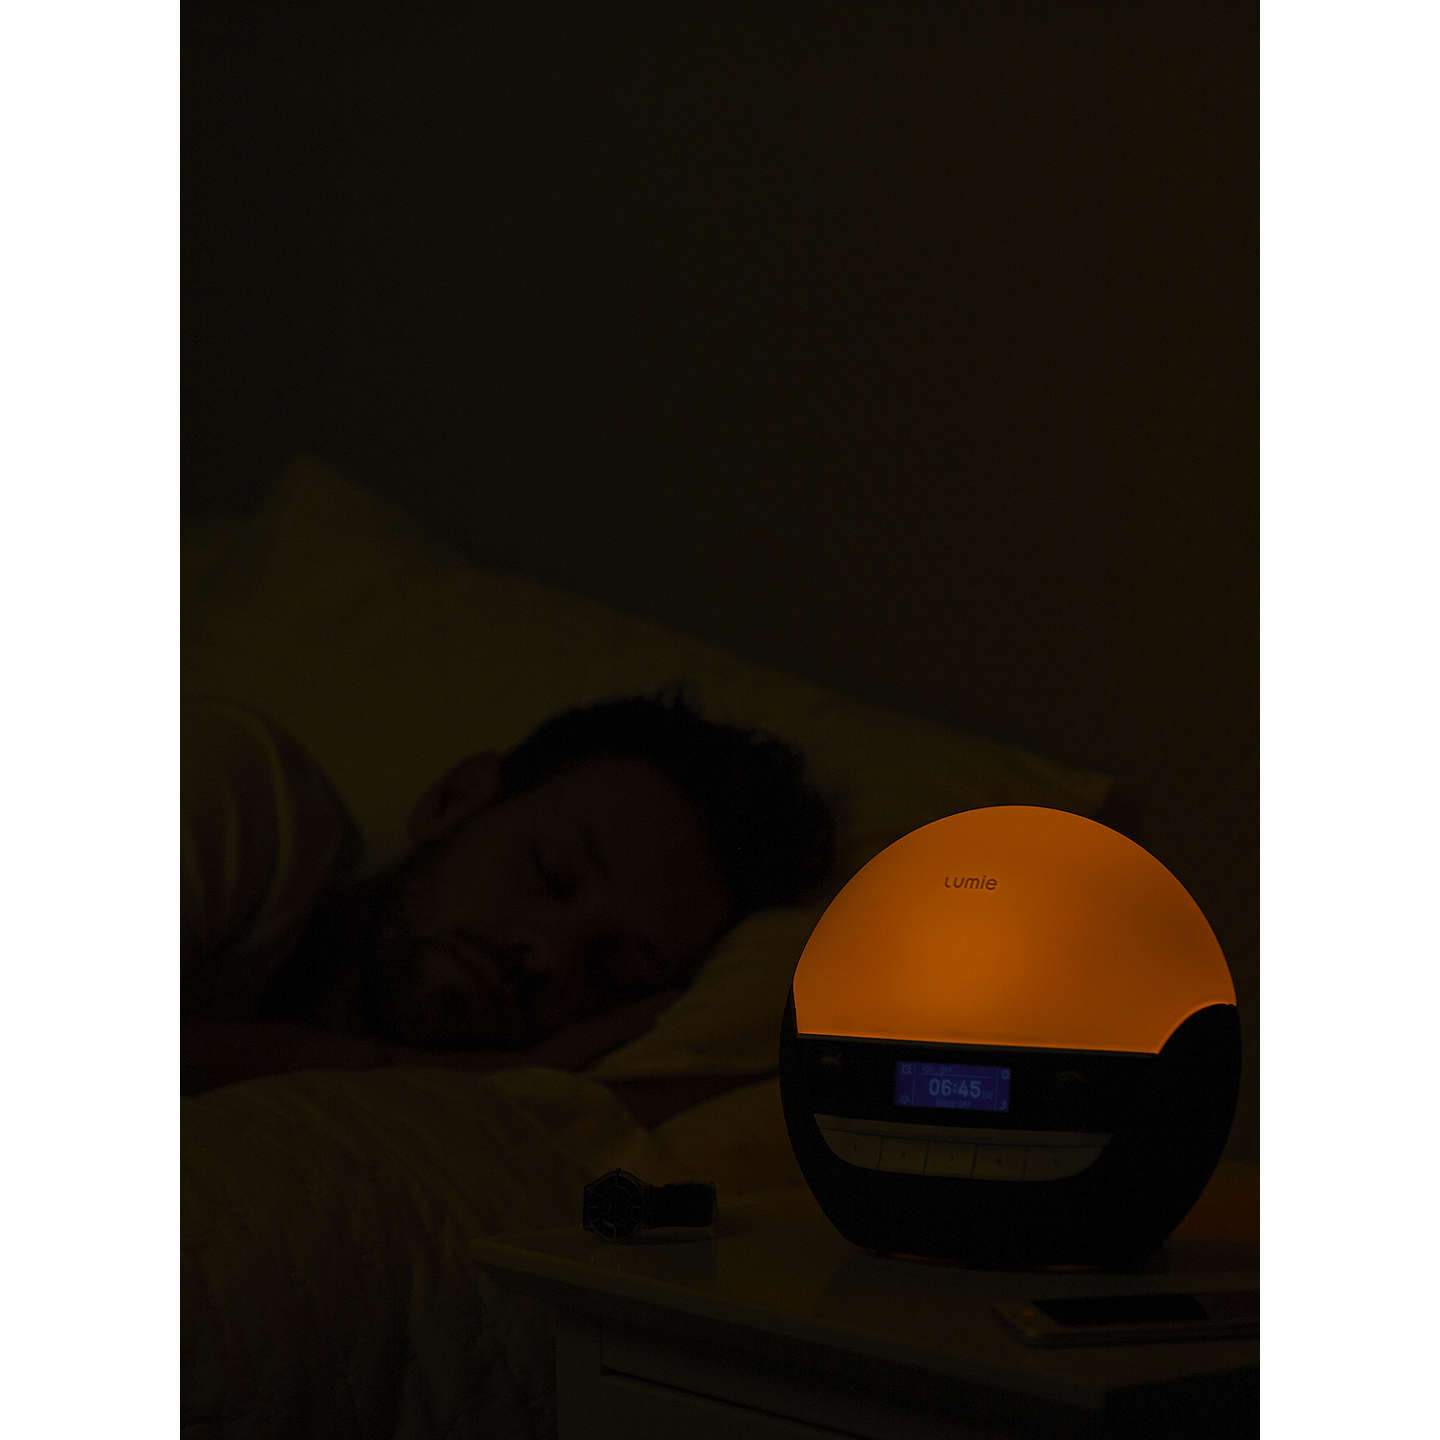 BuyLumie Bodyclock Luxe 700 Wake up to Daylight SAD Light Online at johnlewis.com